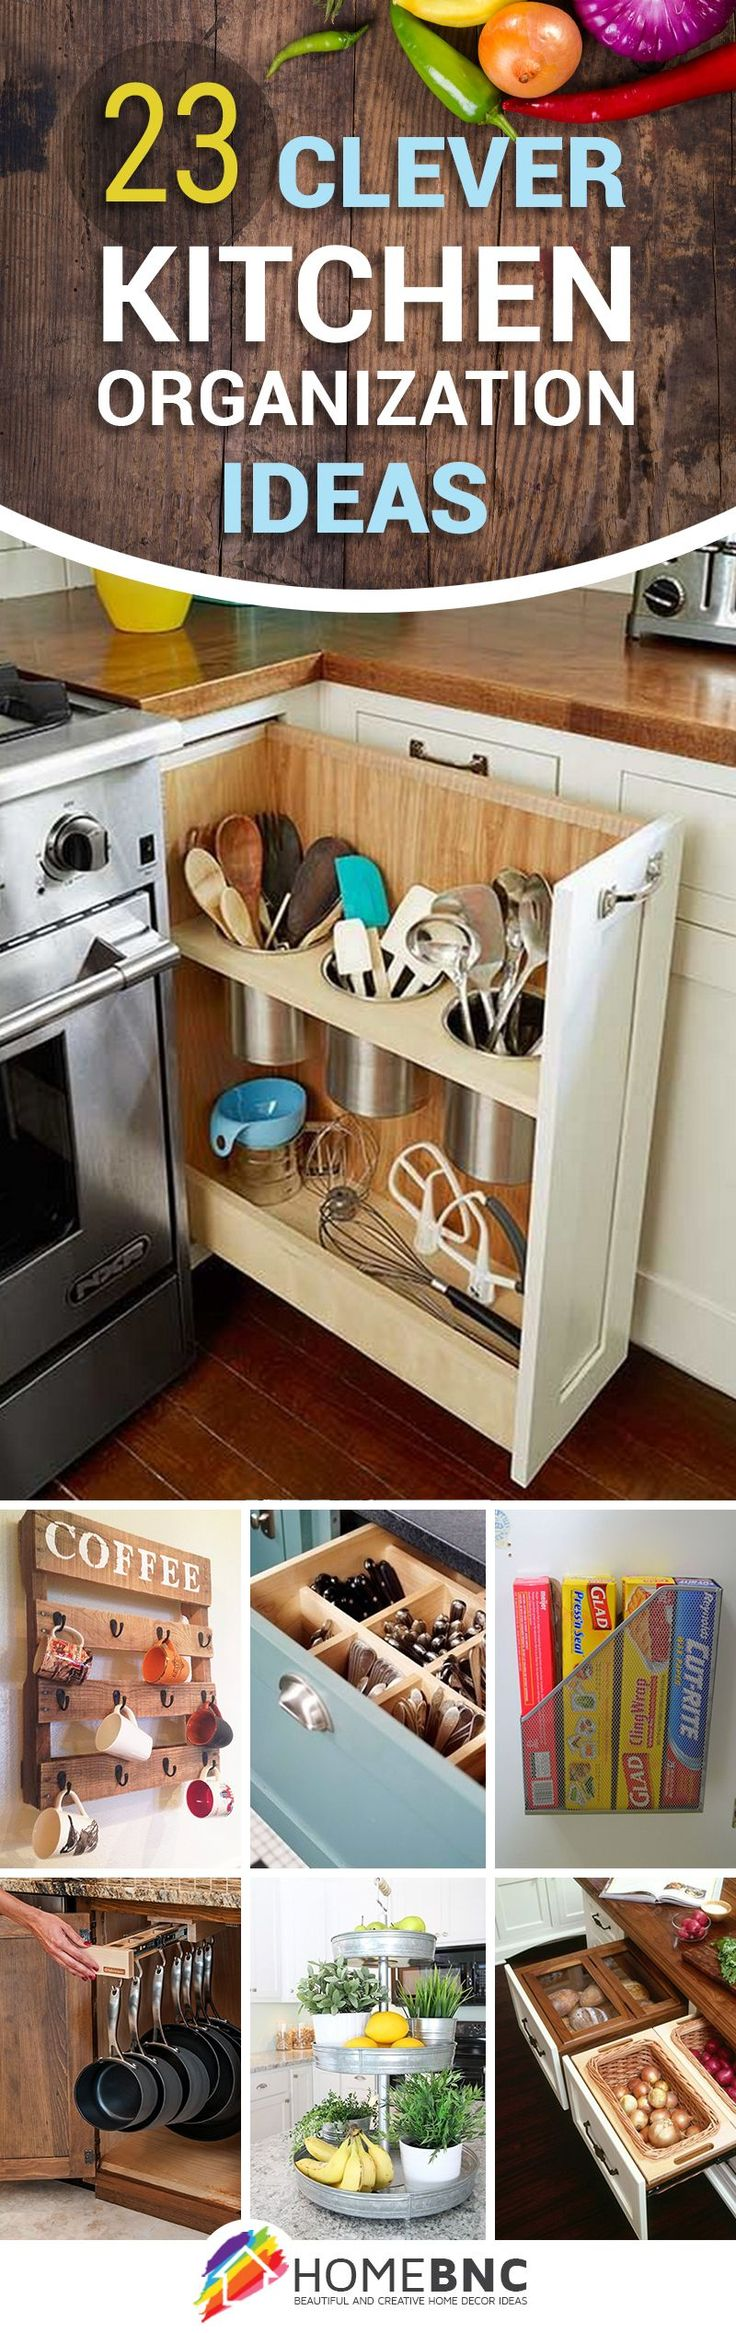 23 Practical Kitchen Organization Ideas that Will Save You a Ton of Space                                                                                                                                                                                 More